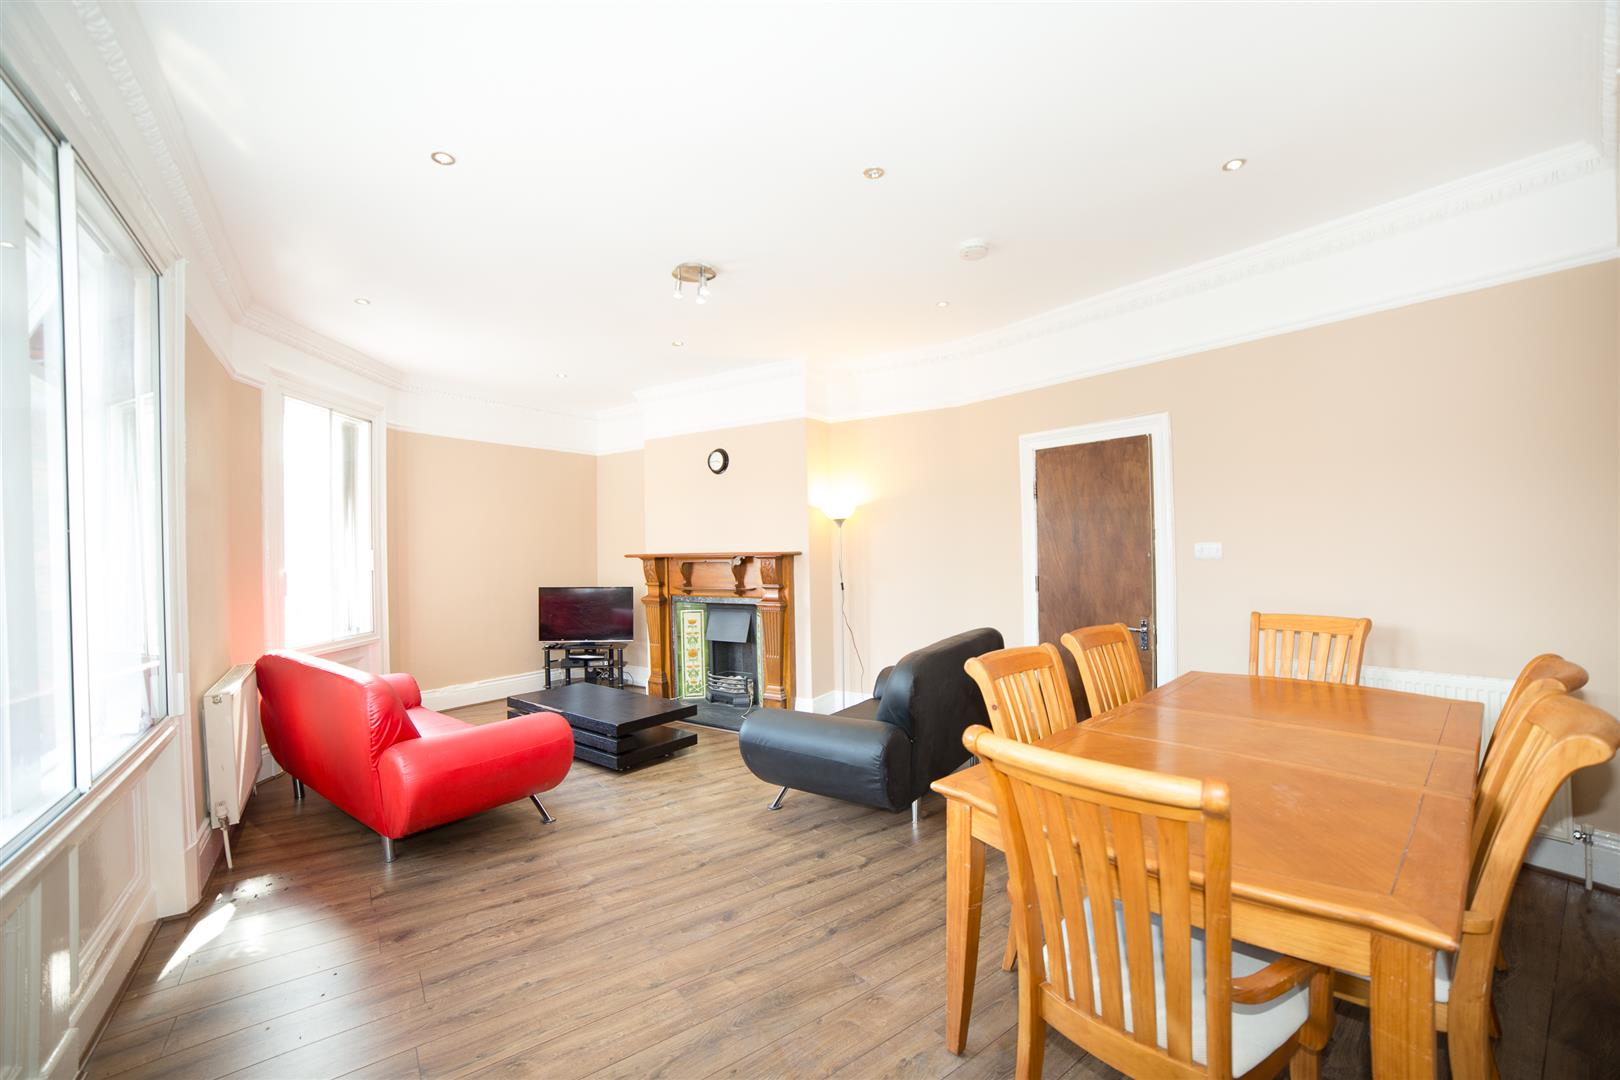 7 bed maisonette to rent in Newcastle Upon Tyne, NE2 1LB 2